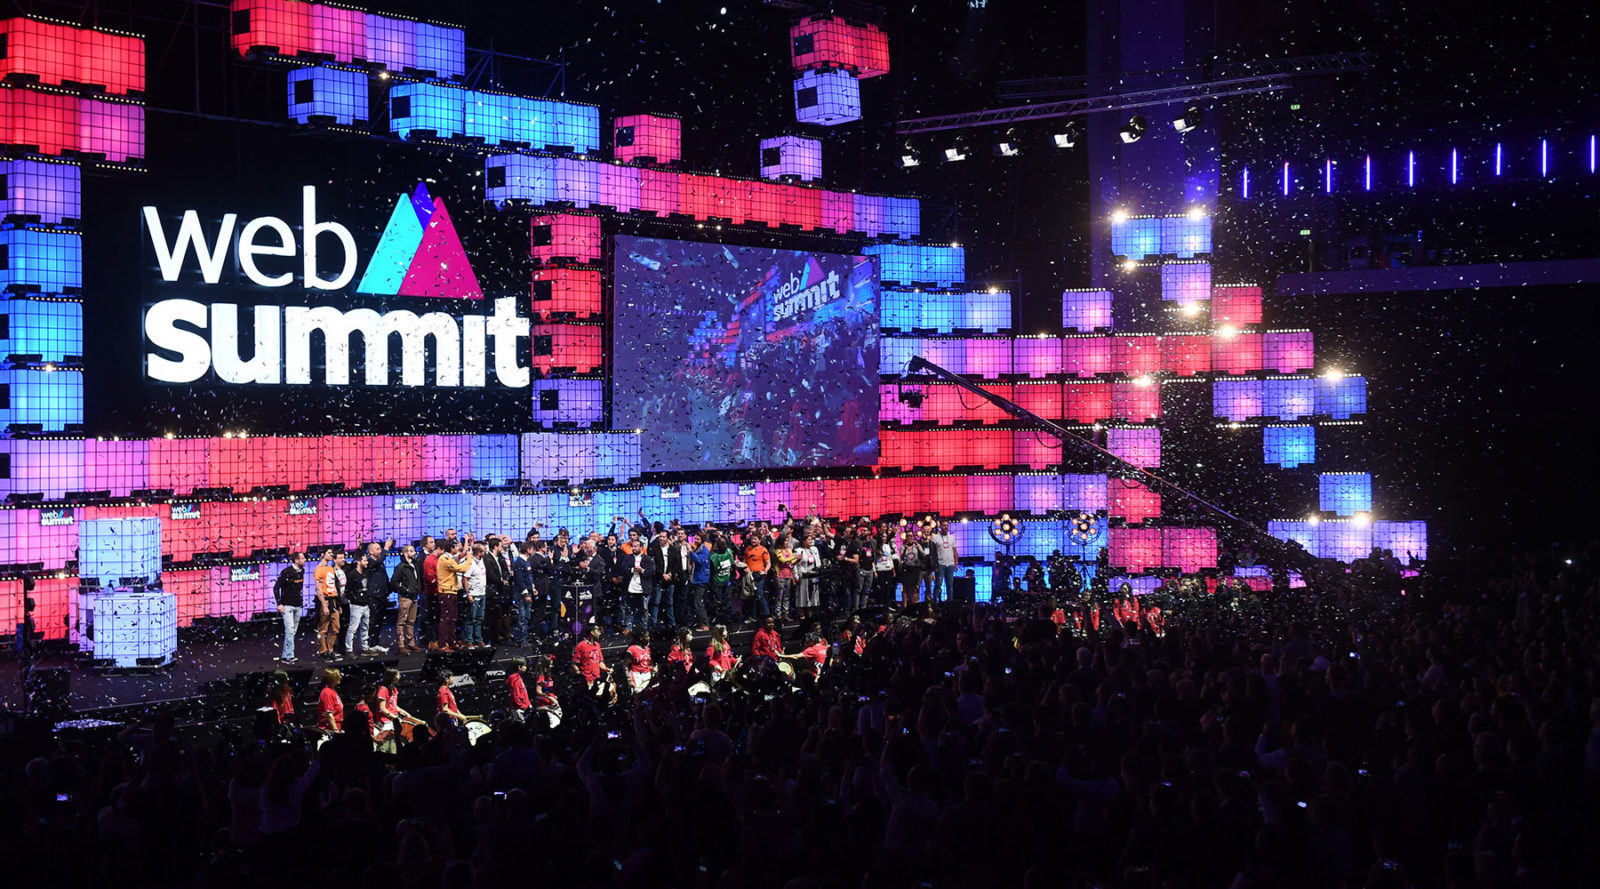 web summit to be held in tokyo and brazil